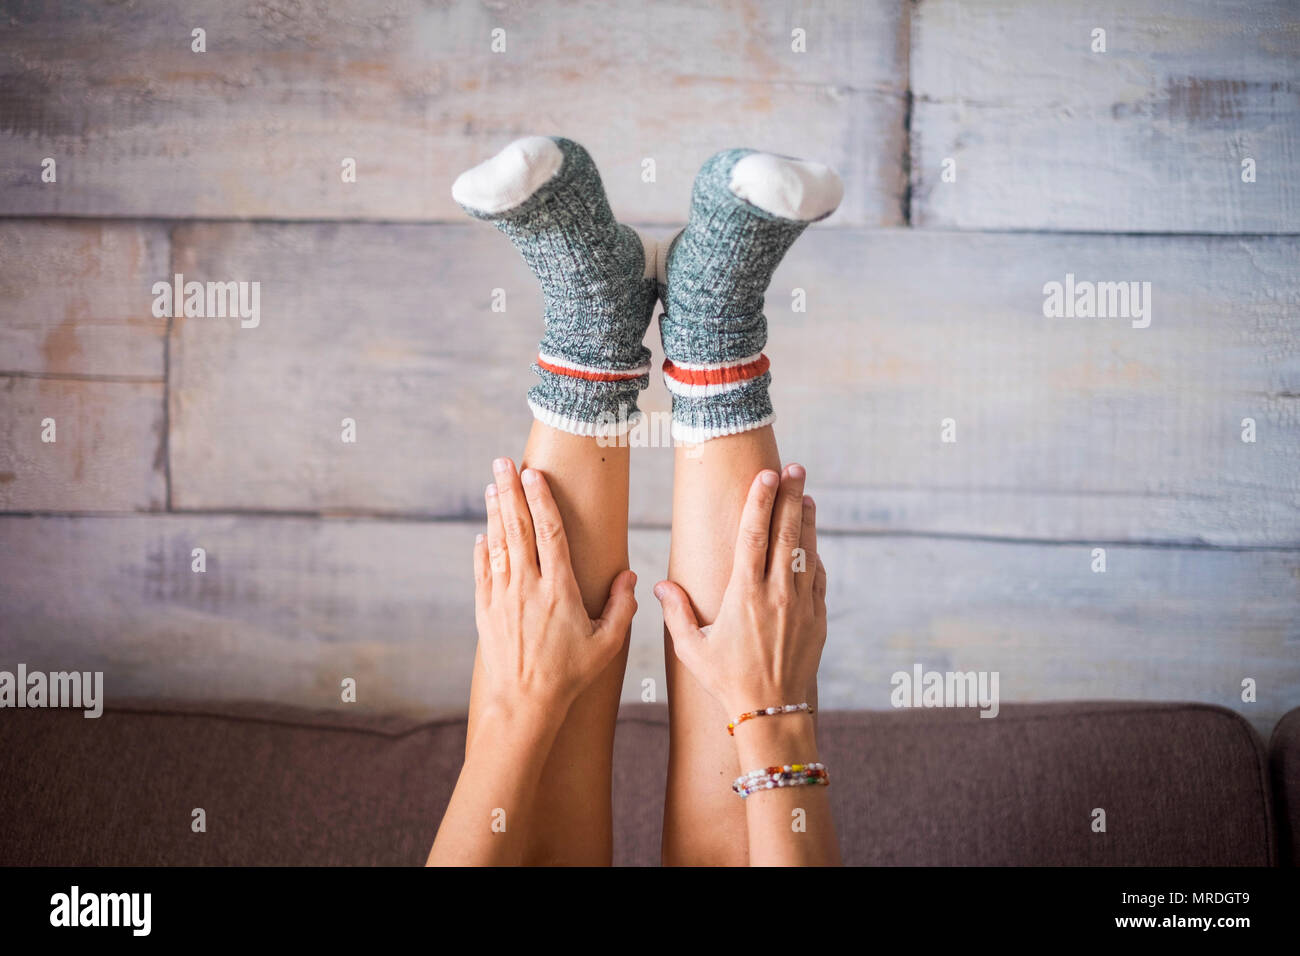 in the middle composition with beautiful woman legs downside with funny and colored socks taken by hands. alternative joy and lifestyle concept for in - Stock Image